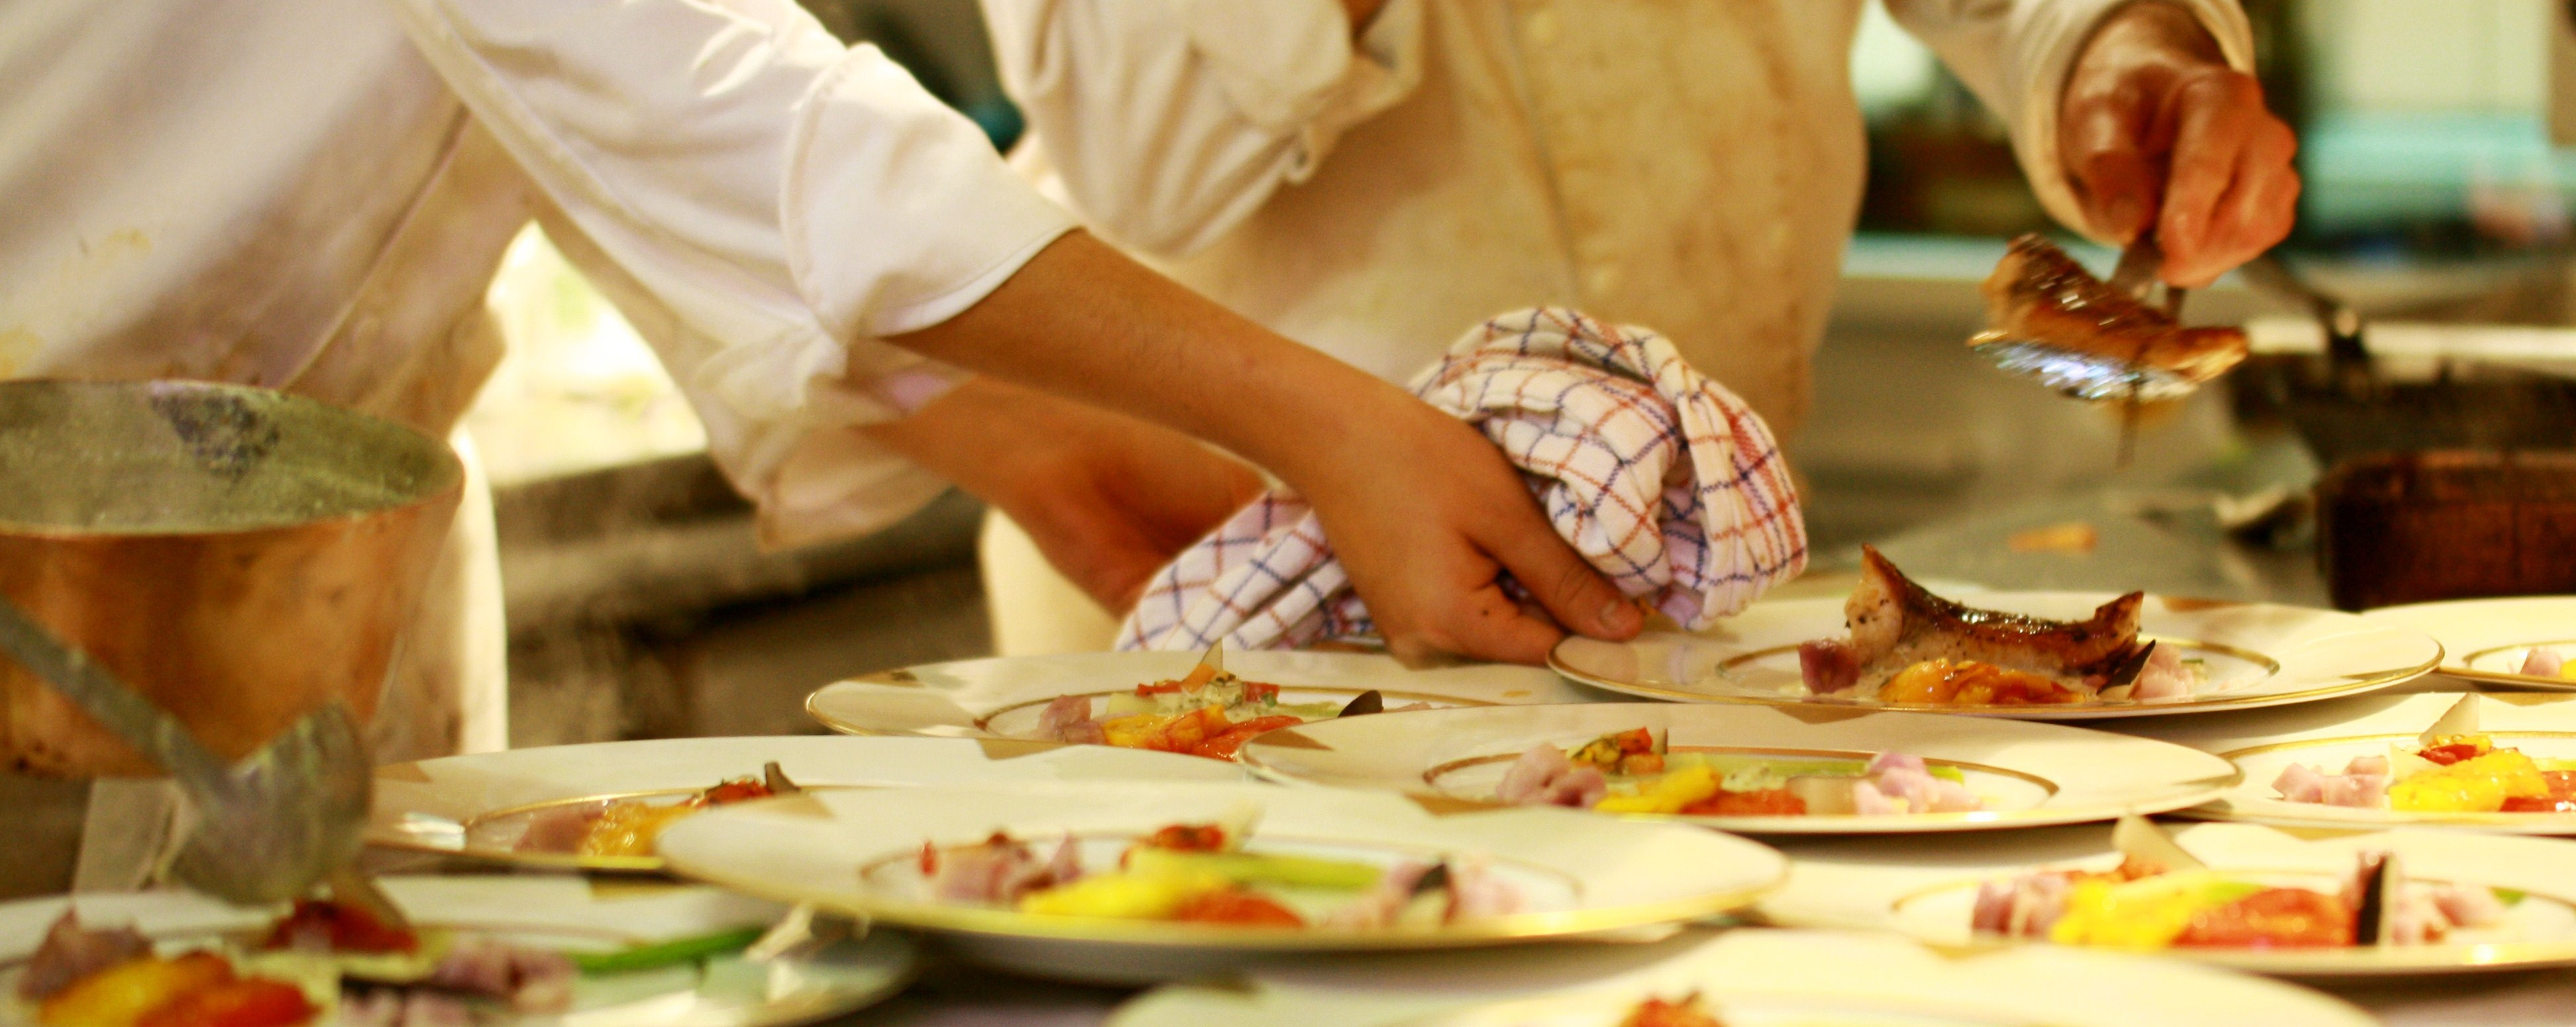 A new cookery school in pollenzo courses for lovers of learning and food unisg university - Scuola cucina italiana ...